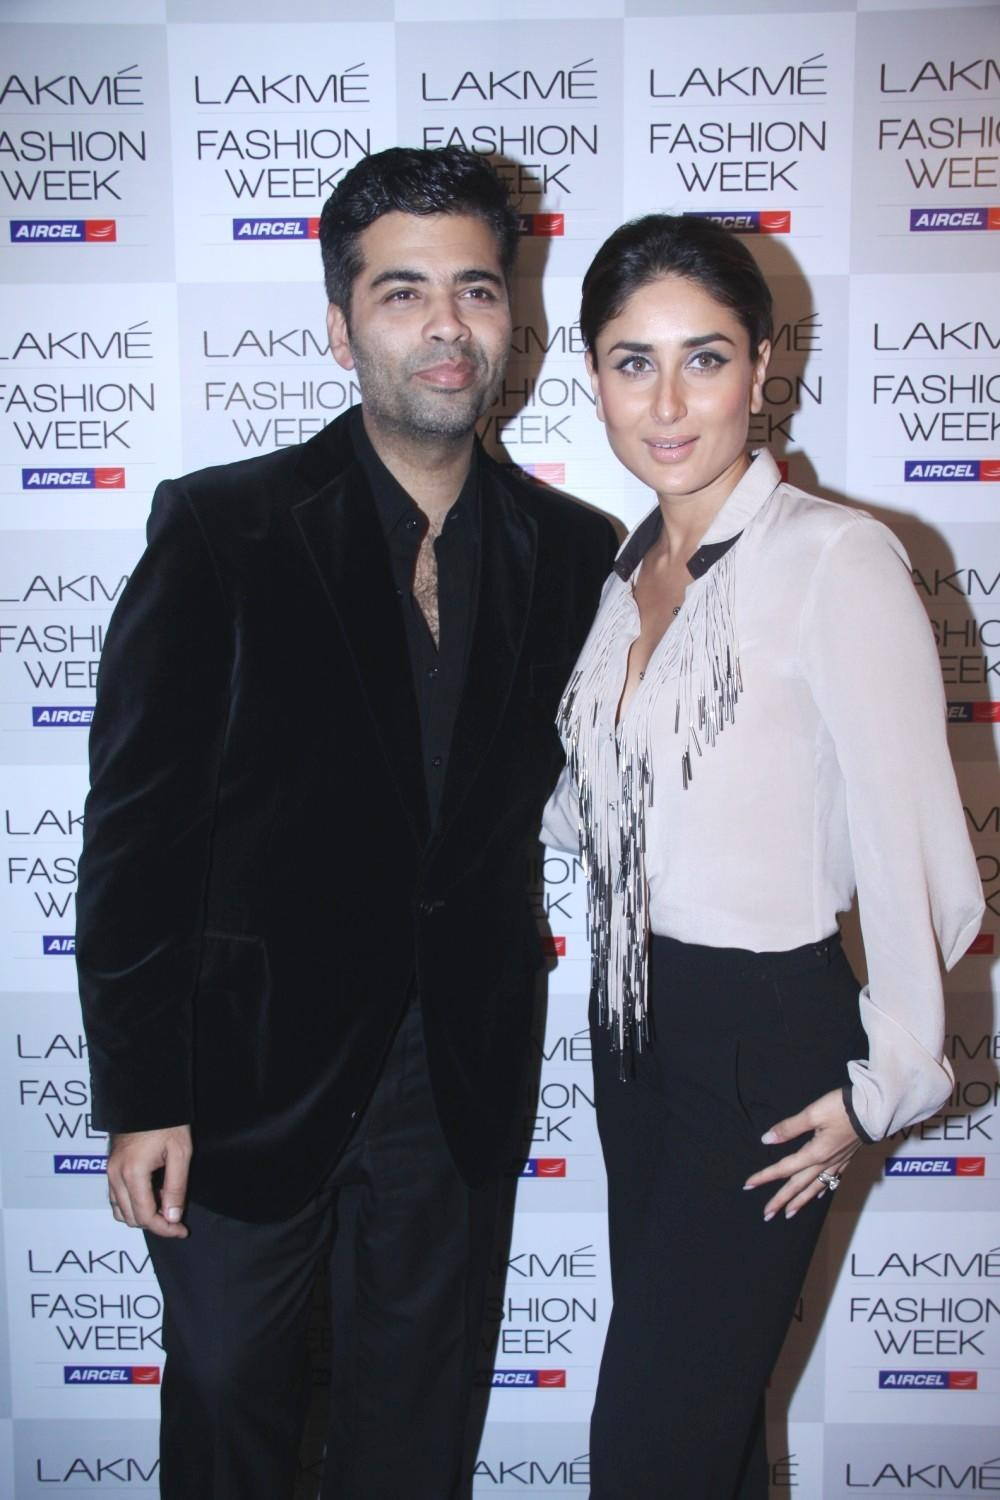 Kareena Kapoor and Karan Johar at Lakme Fashion Week 2012